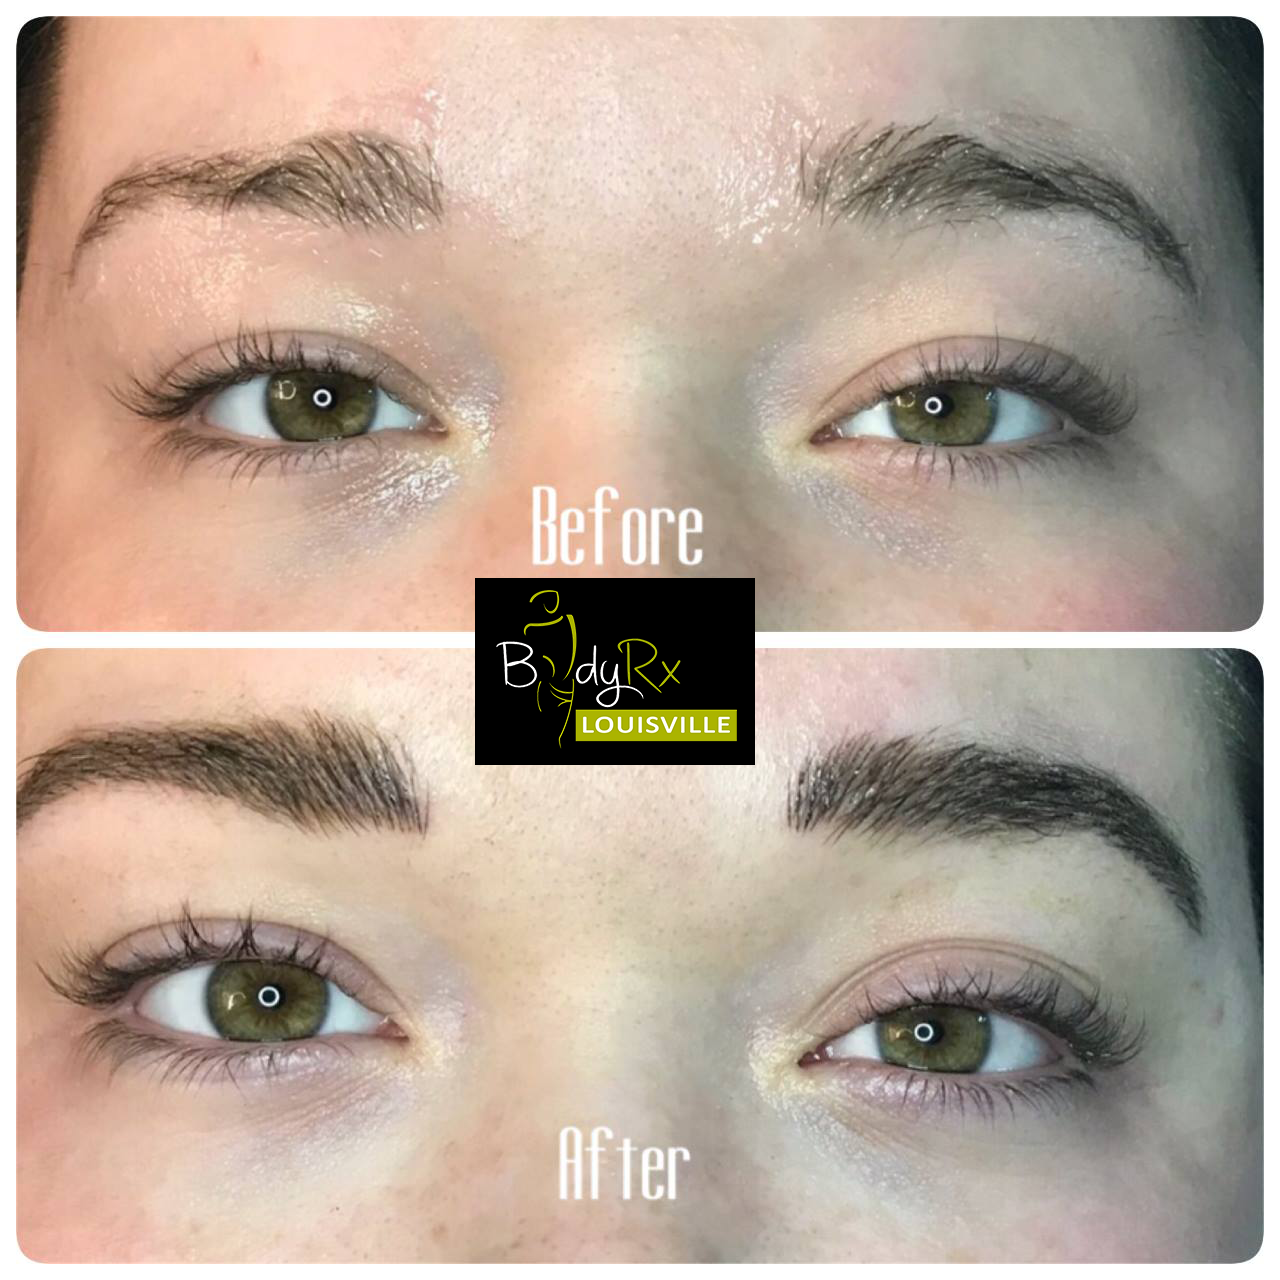 Microblading And Shadding At Bodyrx Louisville 1